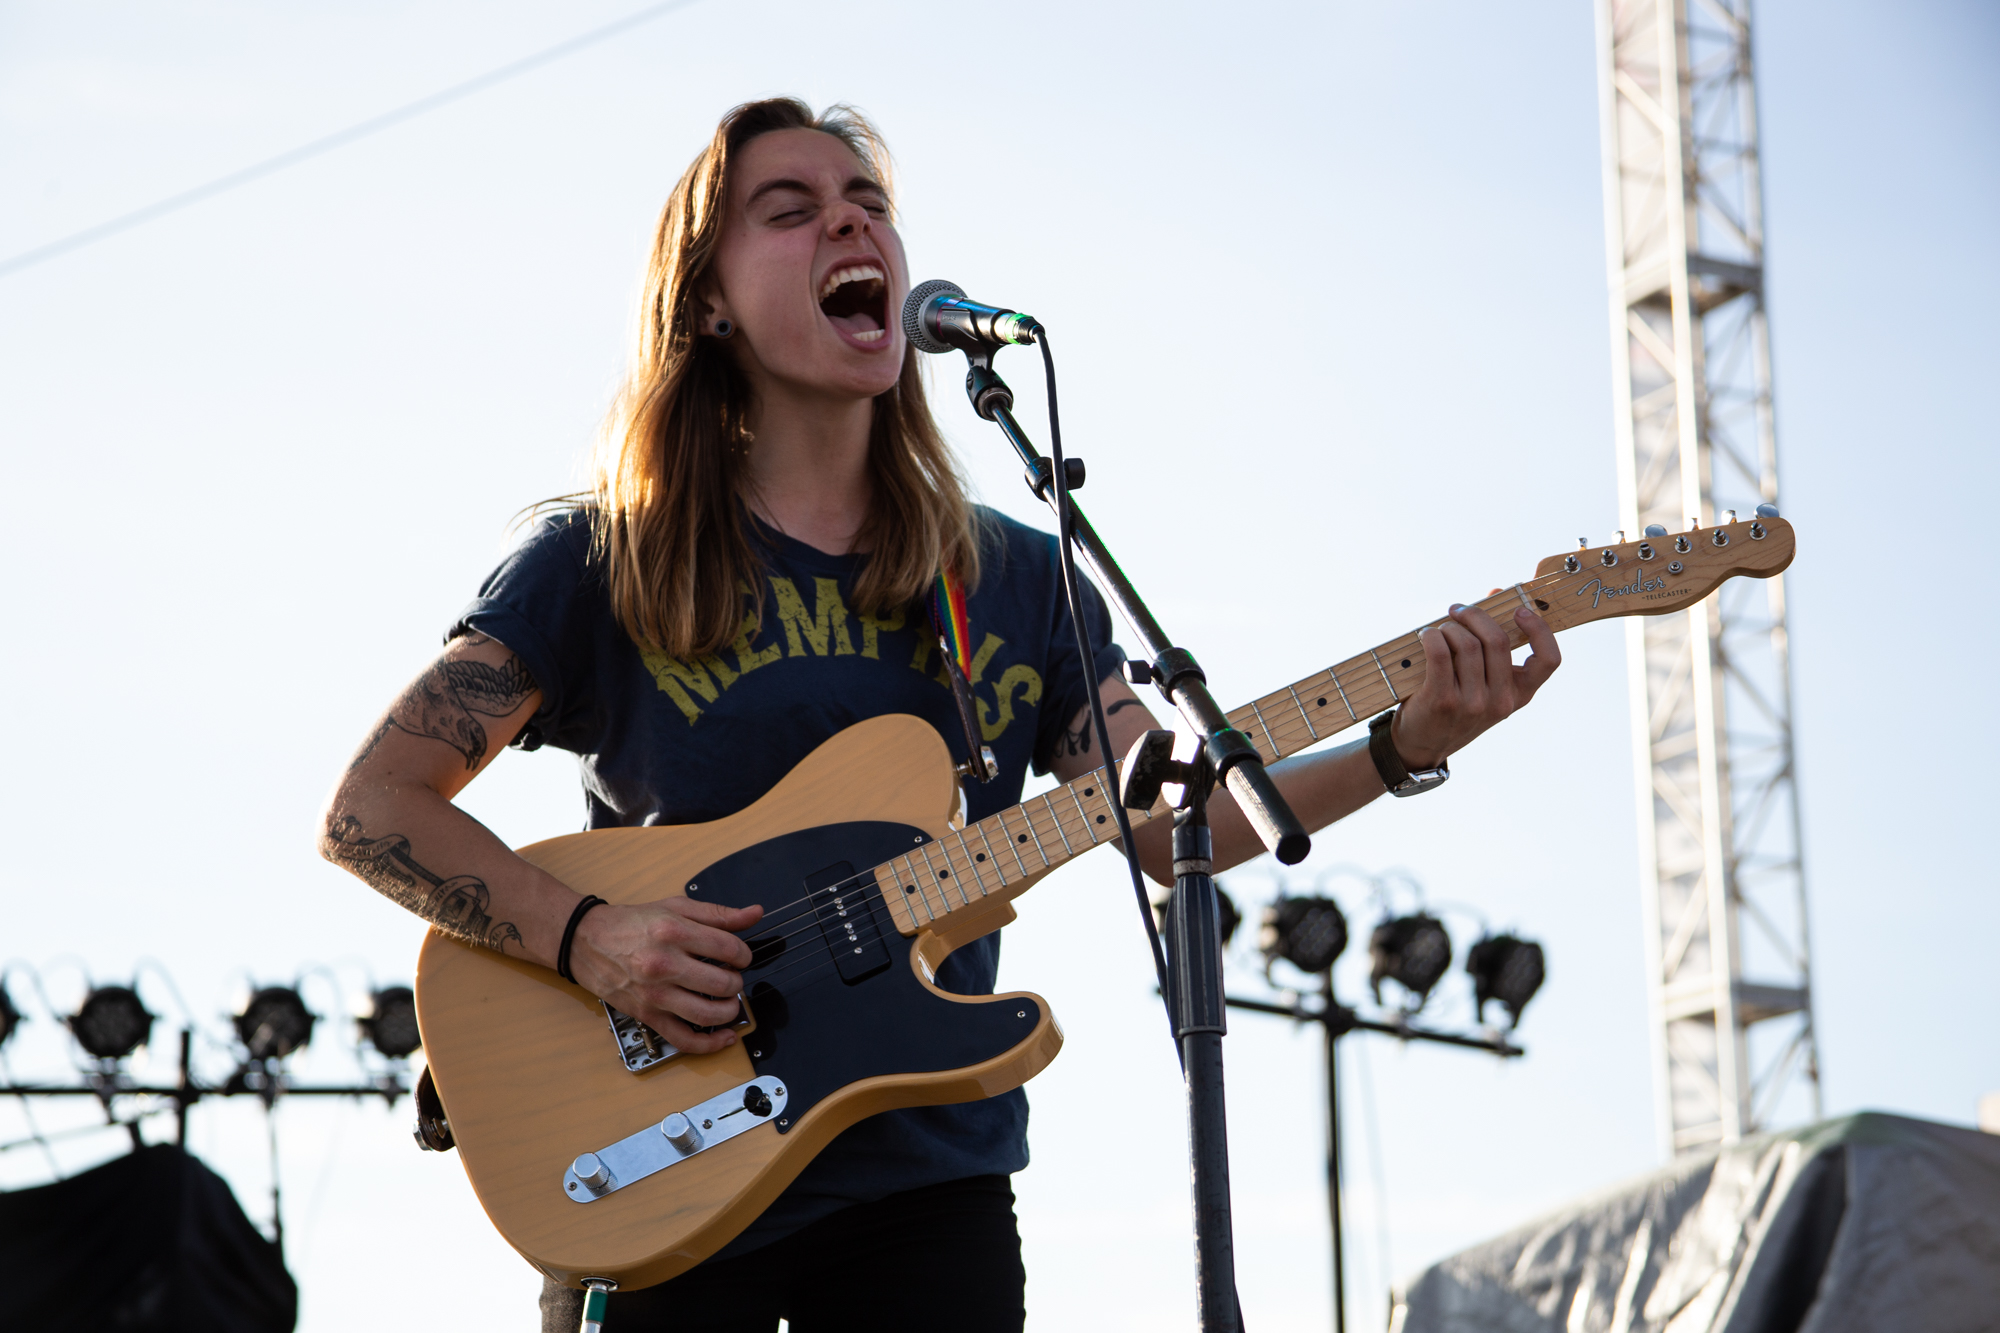 Julien Baker performs at Shadow of the City festival in Asbury Park, NJ on August 25, 2018.